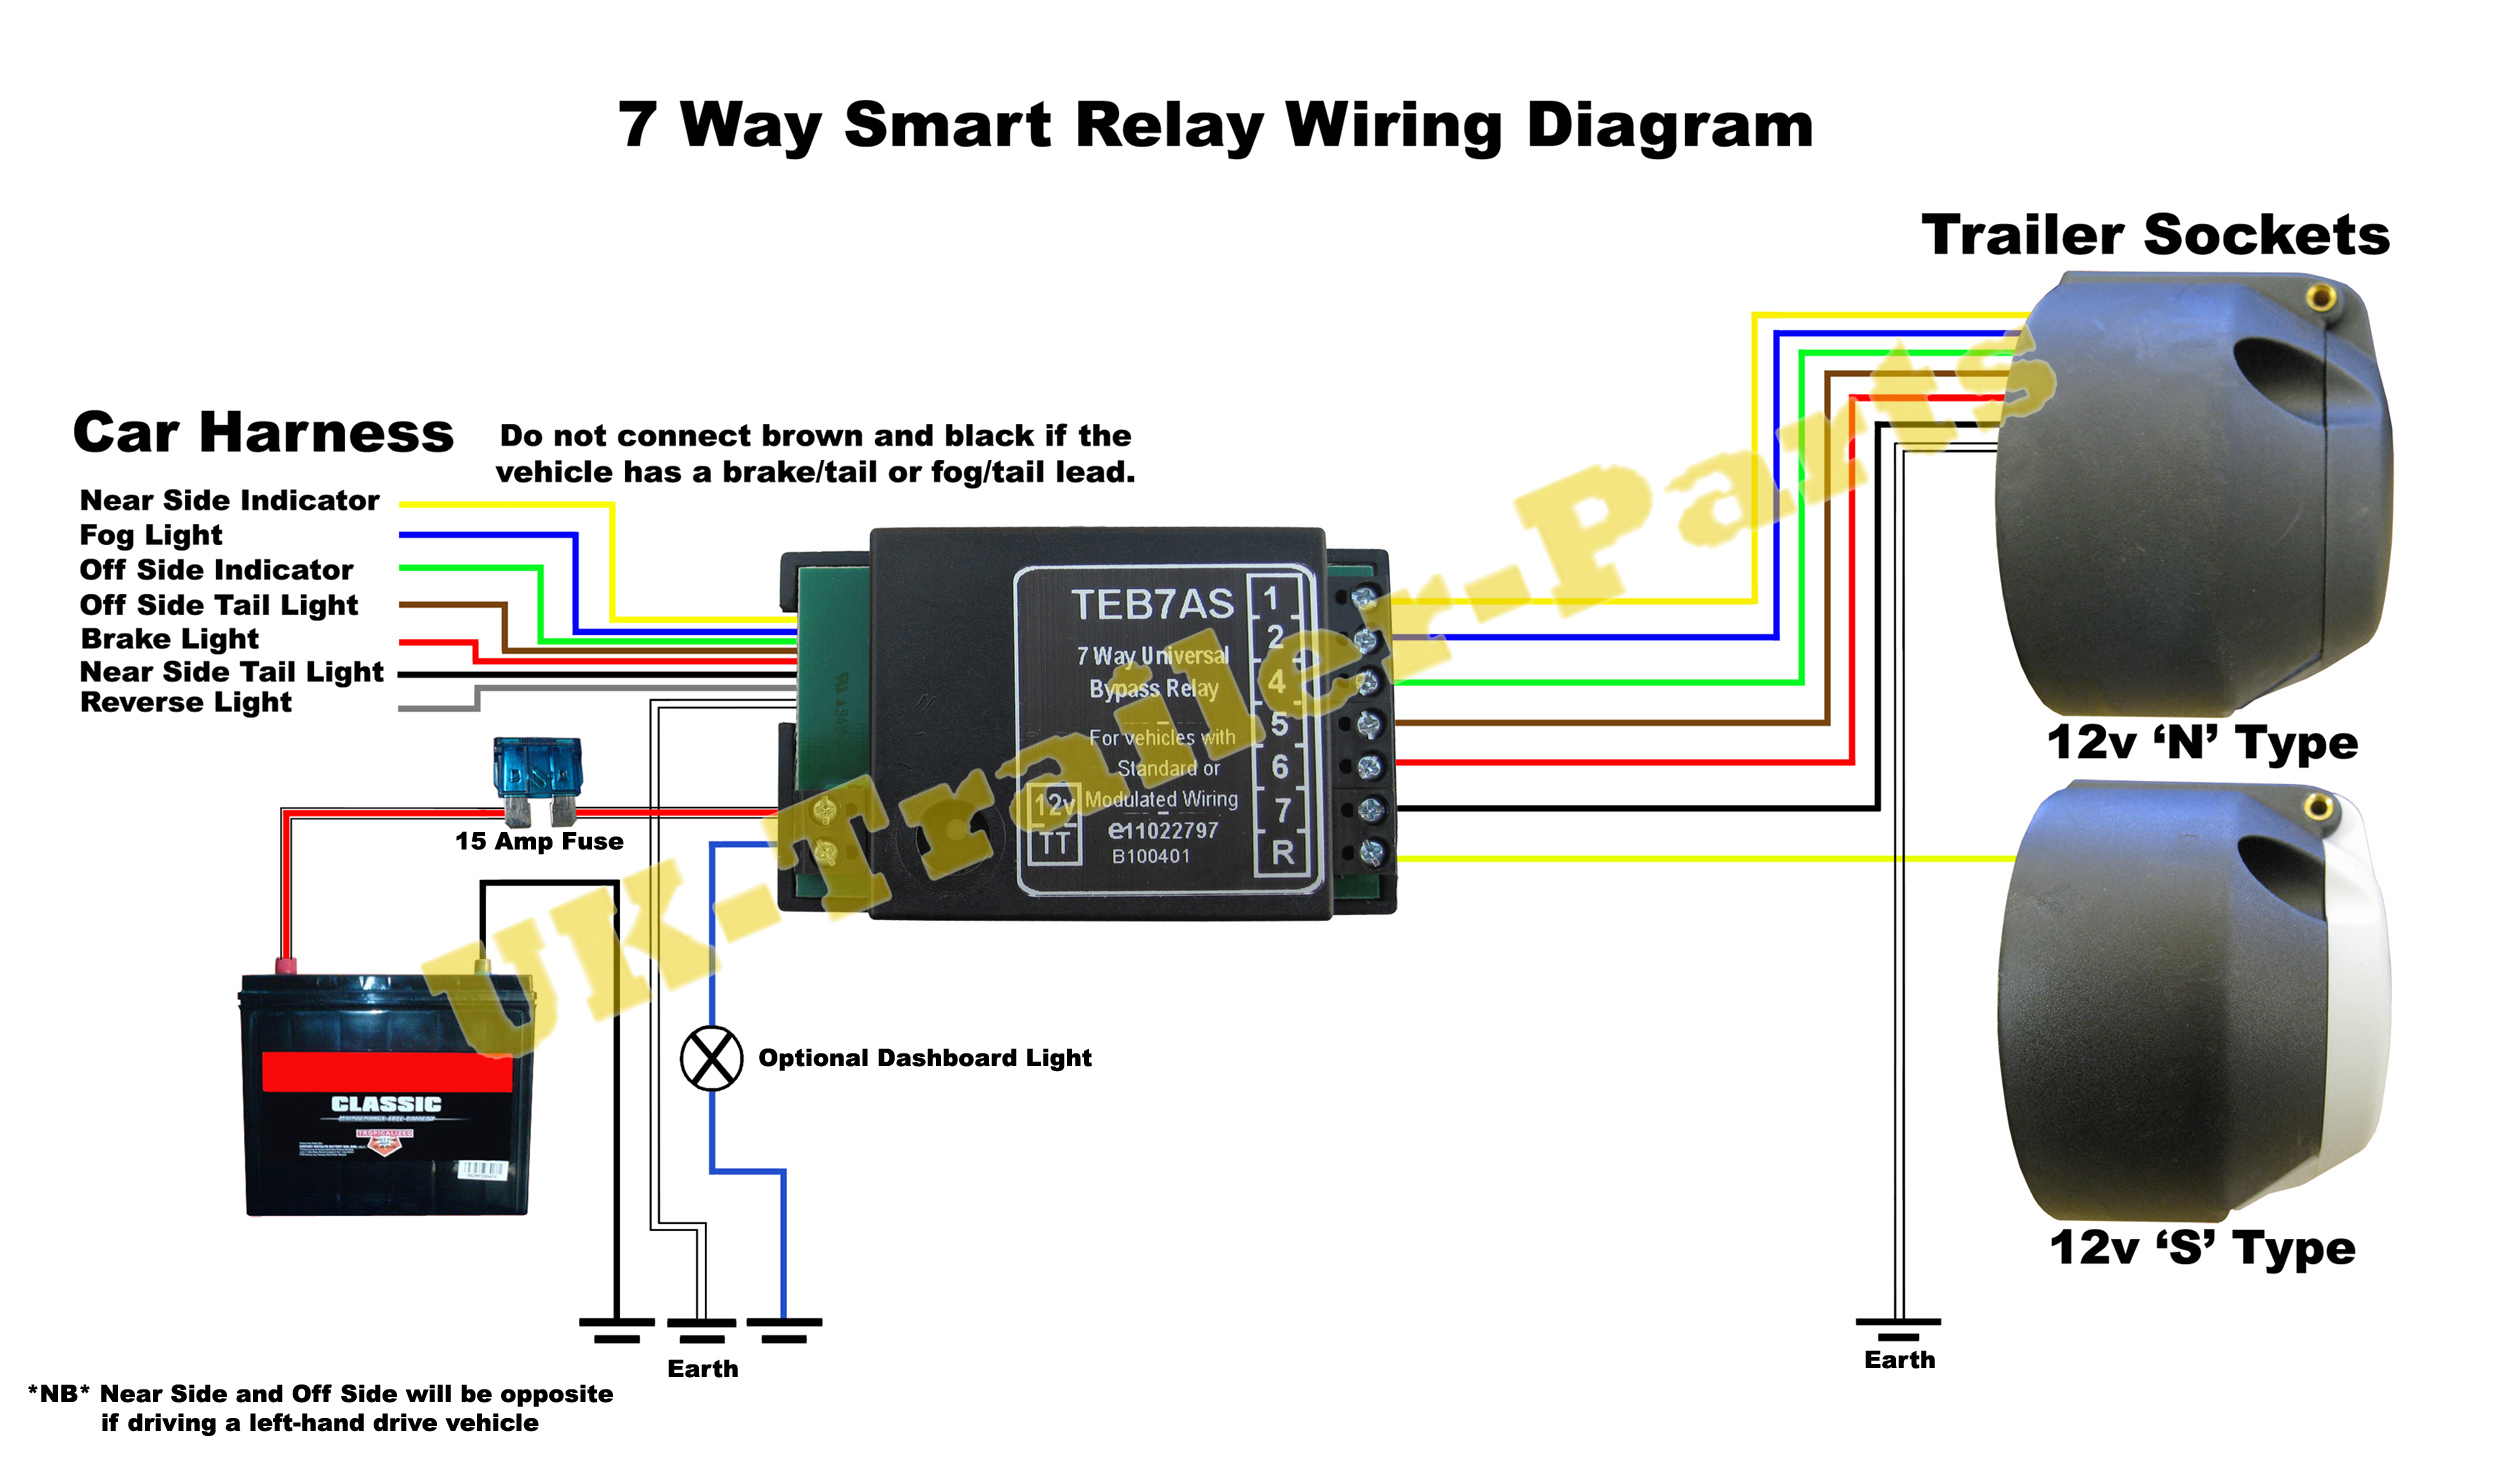 Wiring Diagram For 2010 Vw Jetta Data Schema 1997 7 Way Universal Bypass Relay Uk Trailer Parts 2002